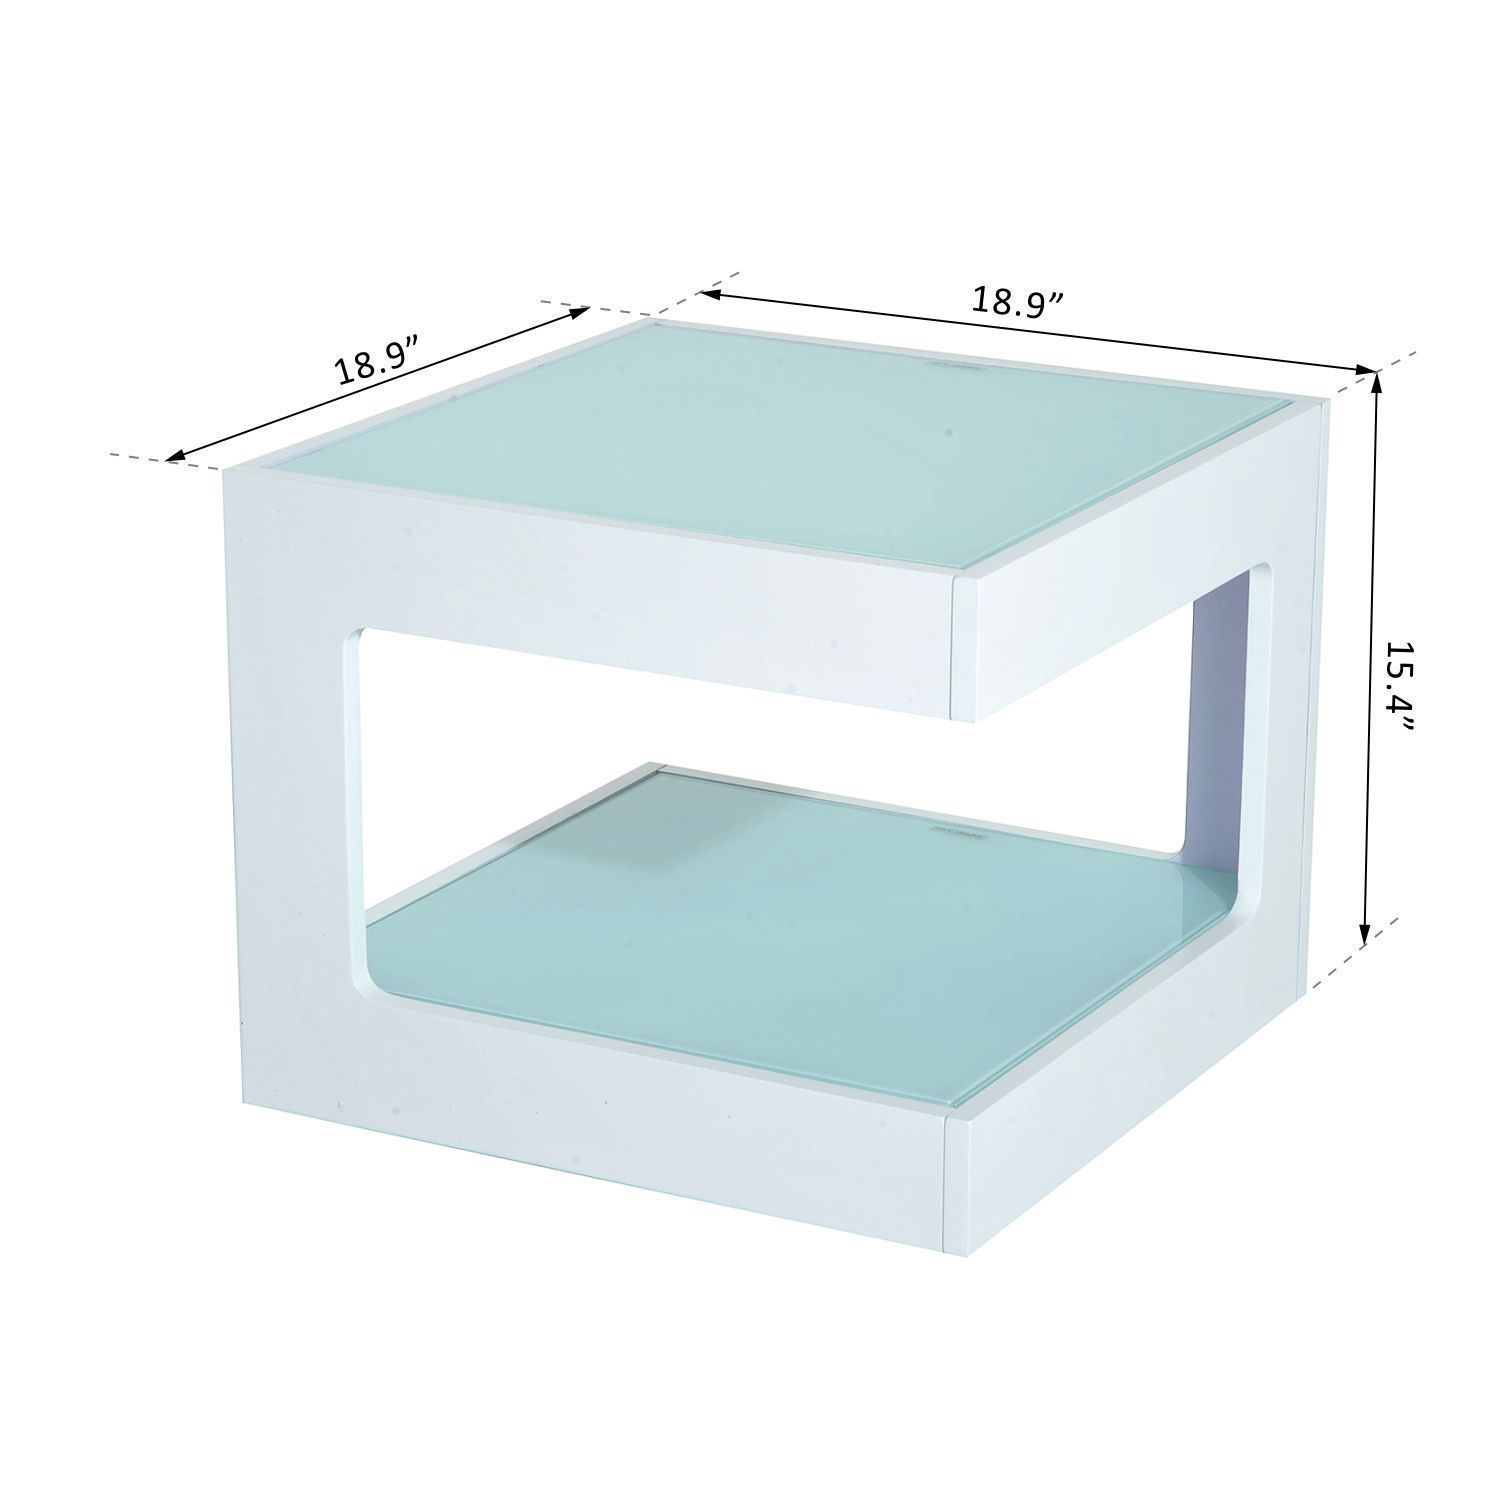 Modern Square Coffee Table With Glass Top: Modern Square Cube Coffee Side Sofa End Table W/ Glass Top